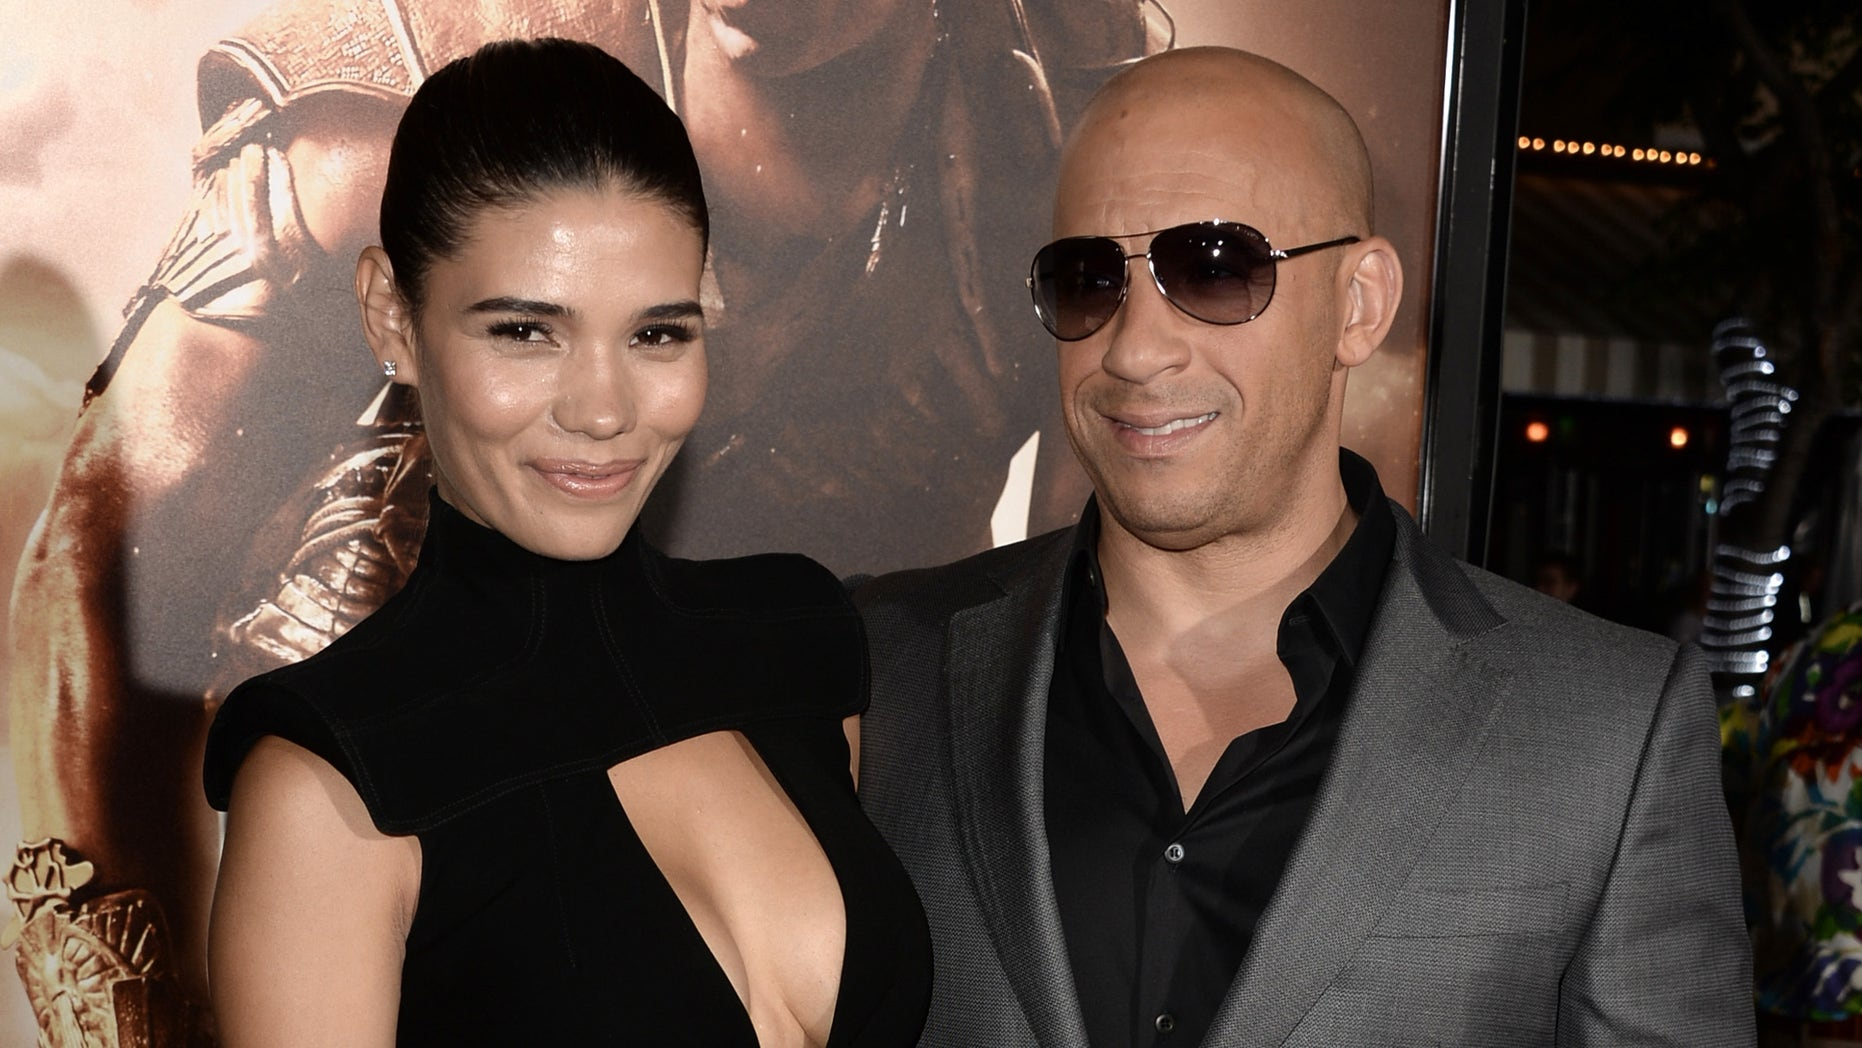 """WESTWOOD, CA - AUGUST 28:  Actor Vin Diesel (R) and model Paloma Jimenez attend the premiere of Universal Pictures' """"Riddick"""" at Mann Village Theatre on August 28, 2013 in Westwood, California.  (Photo by Kevin Winter/Getty Images)"""